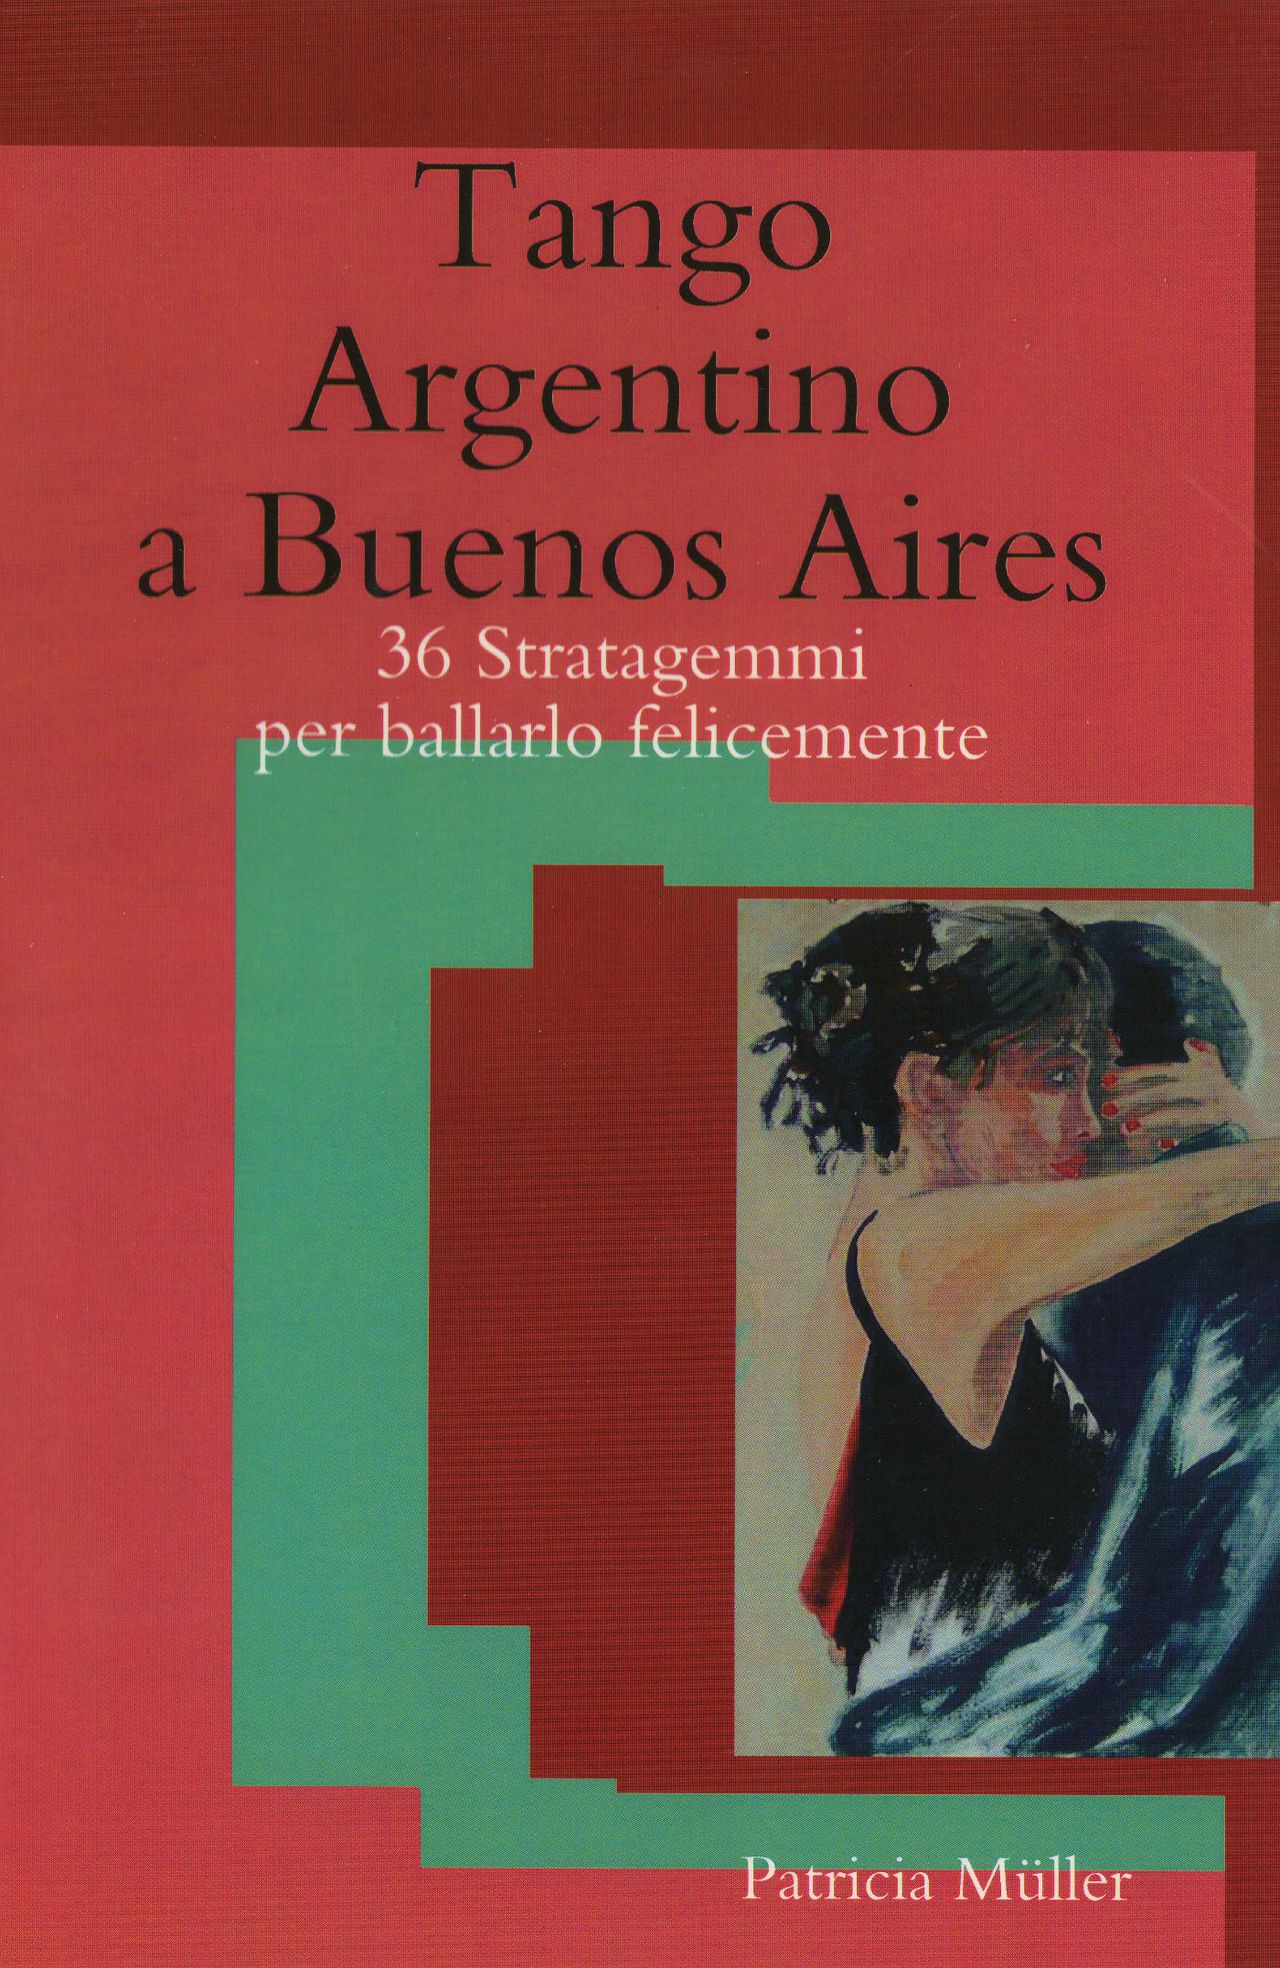 Tango Argentino a Buenos Aires - Kindle